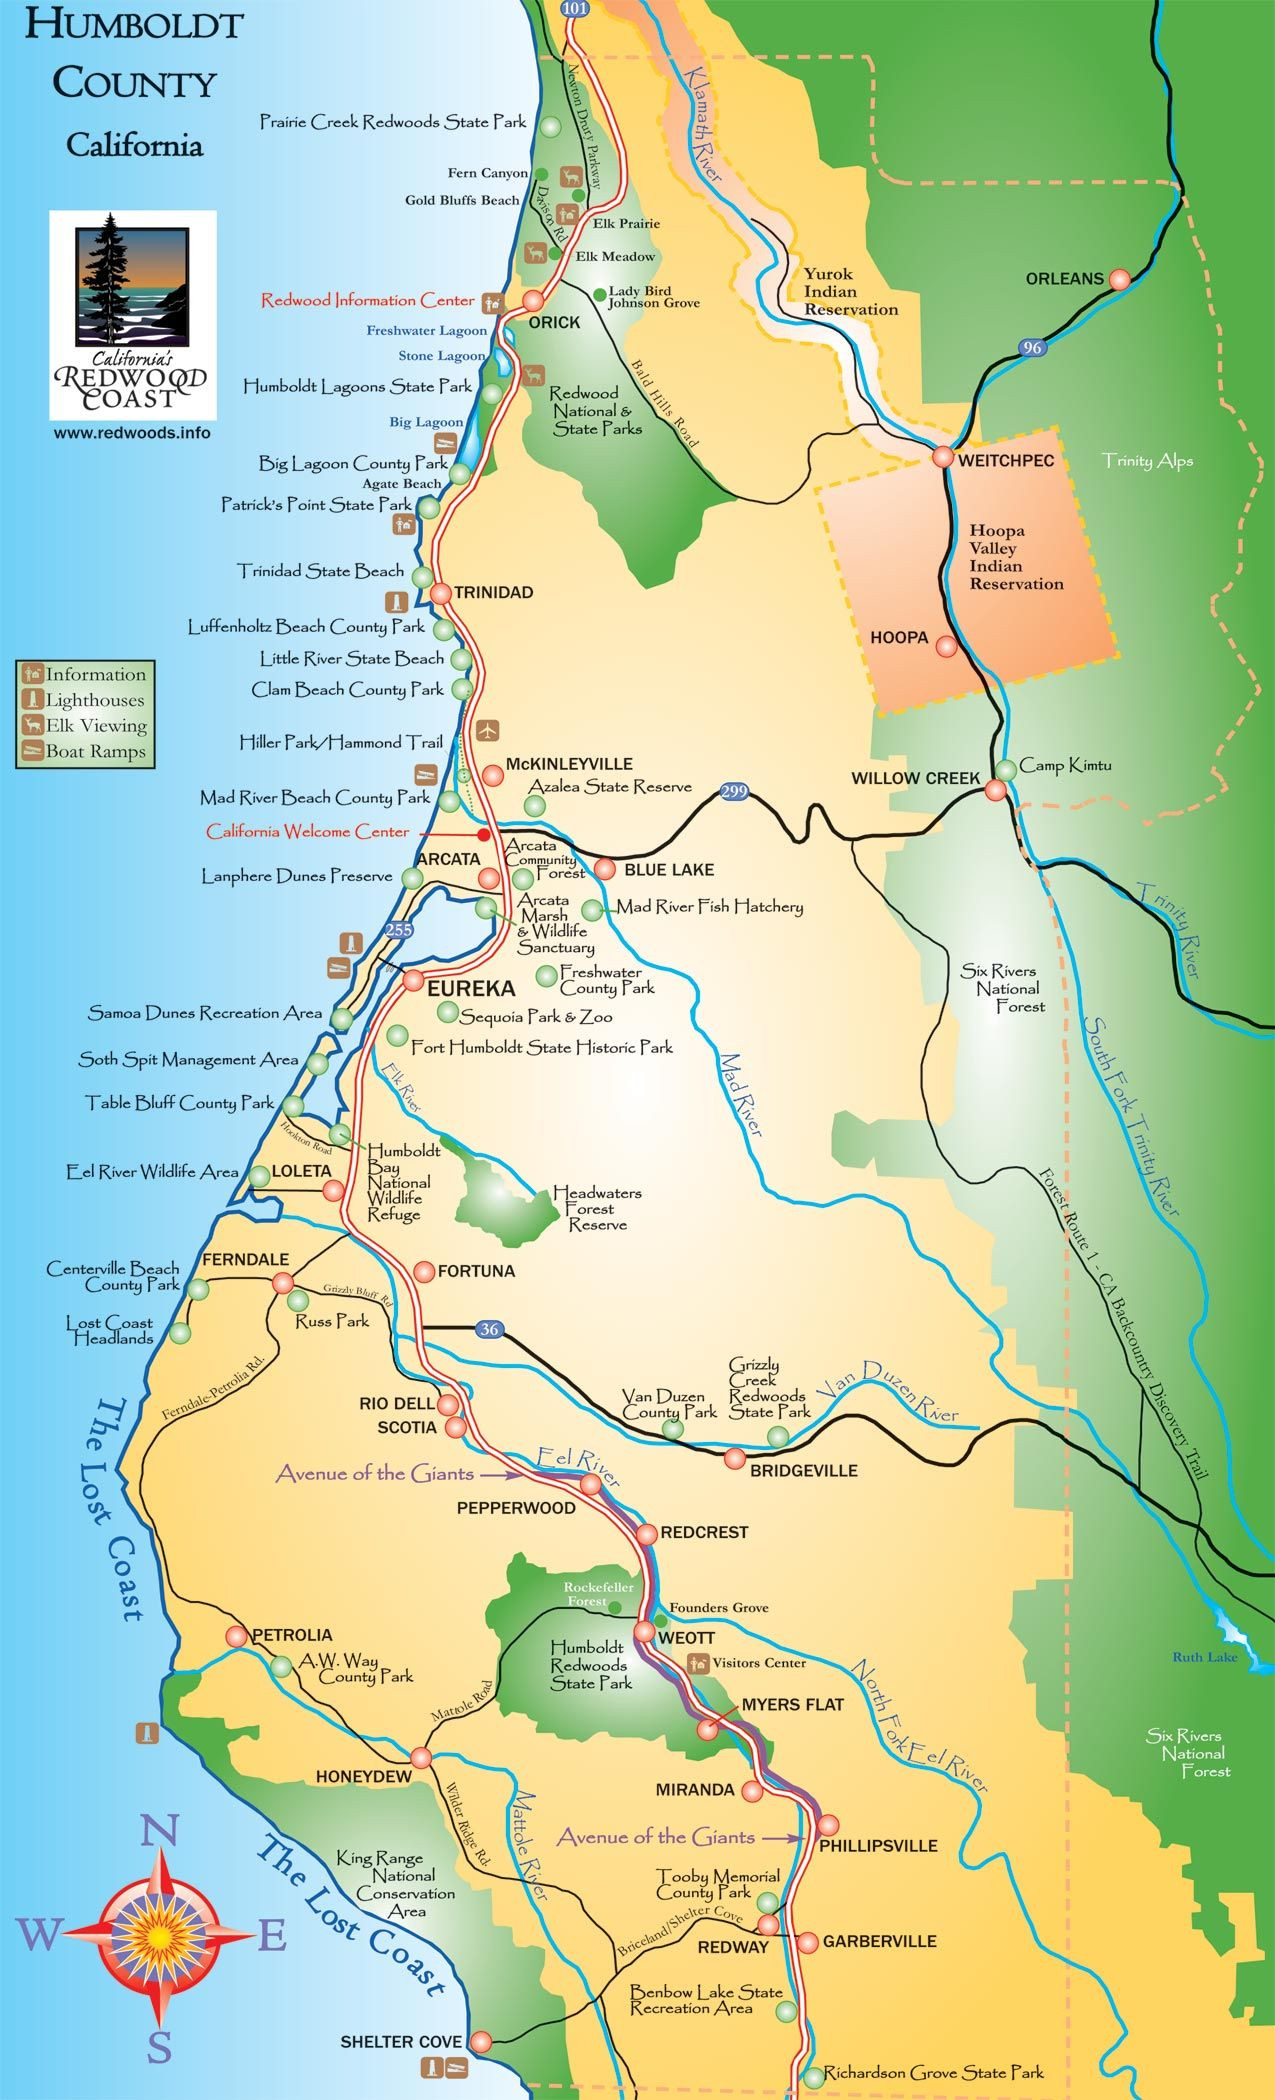 Giant Redwoods California Map Reference Humboldt County California - Avenue Of The Giants California Map